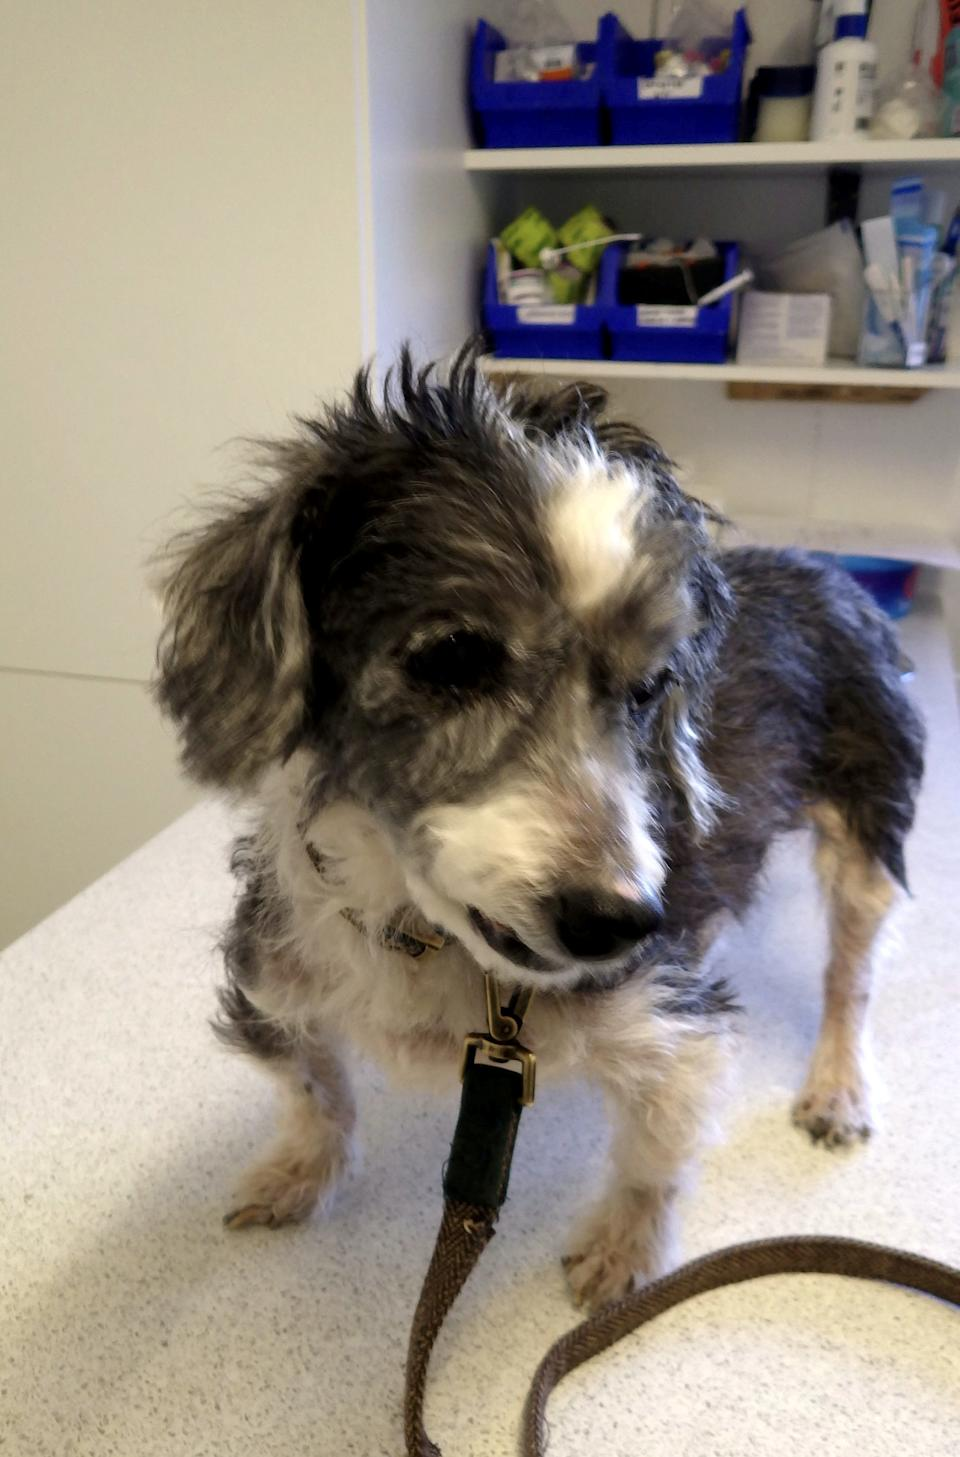 Terrier Dudley was found suffering from dental issues, skin disease and dry eye. (SWNS)